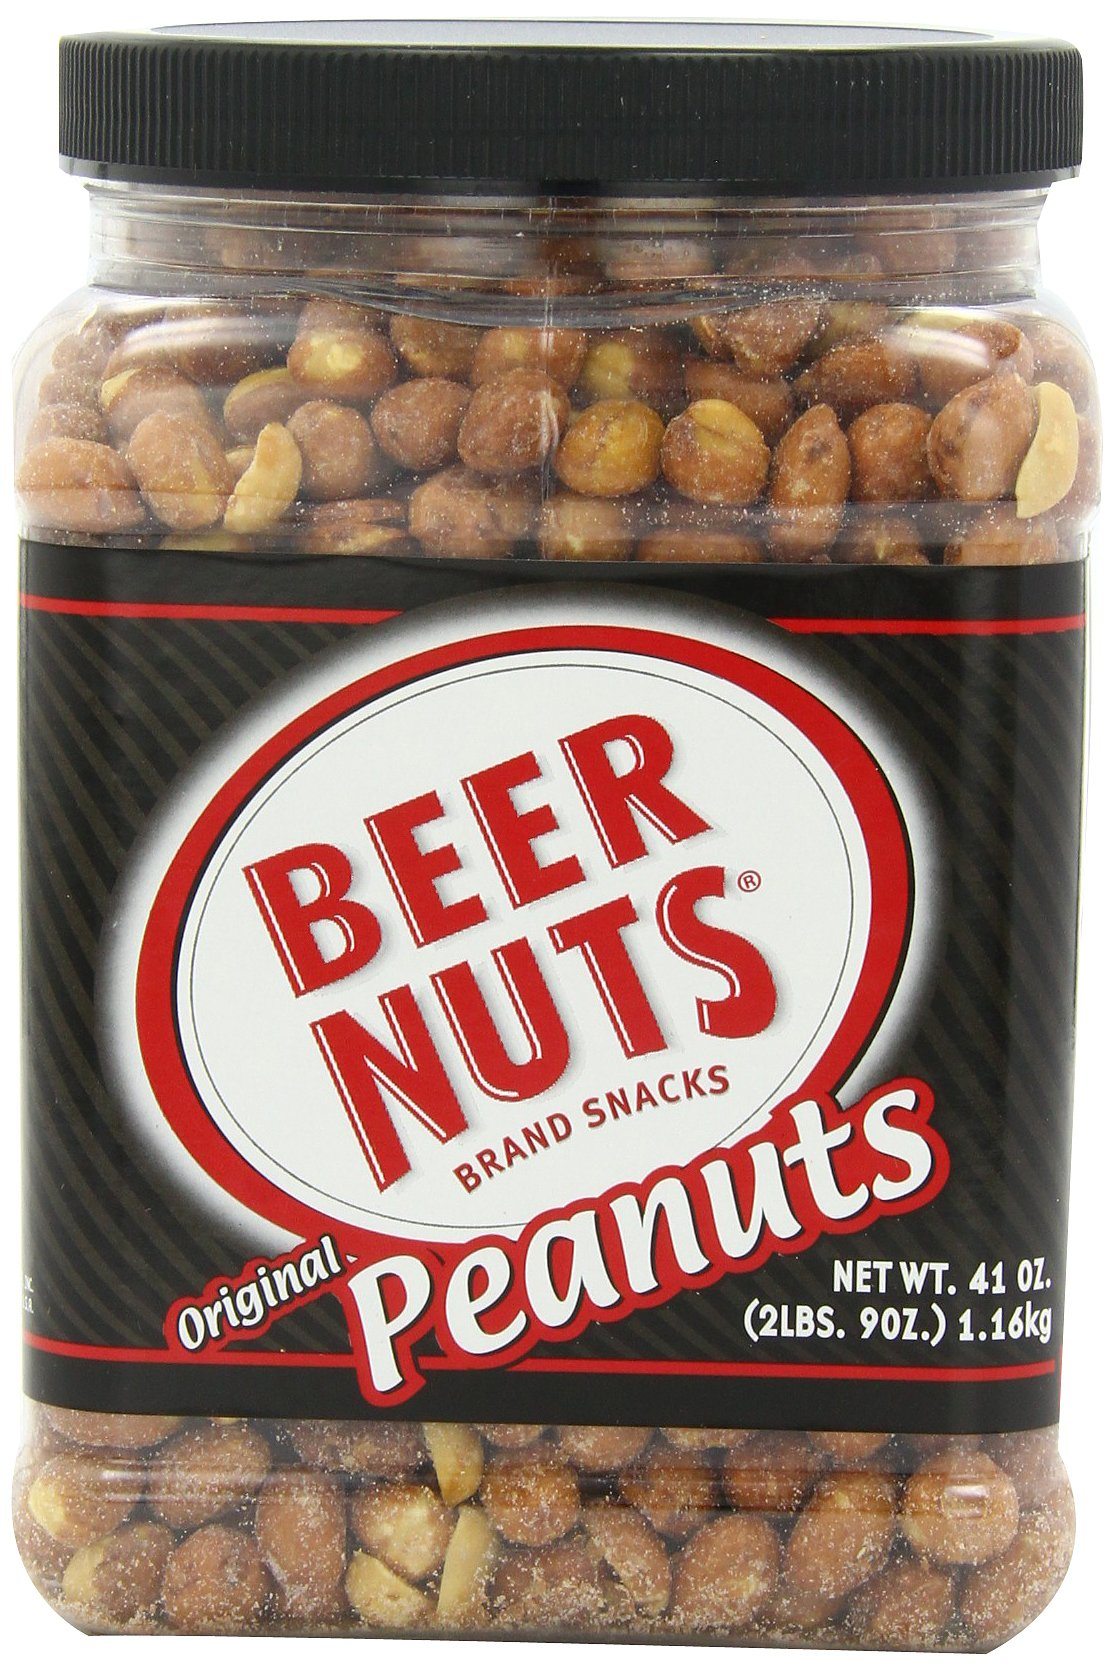 BEER NUTS Original Peanuts (Party), 41-Ounce Jars (Pack of 2) by Beer Nuts